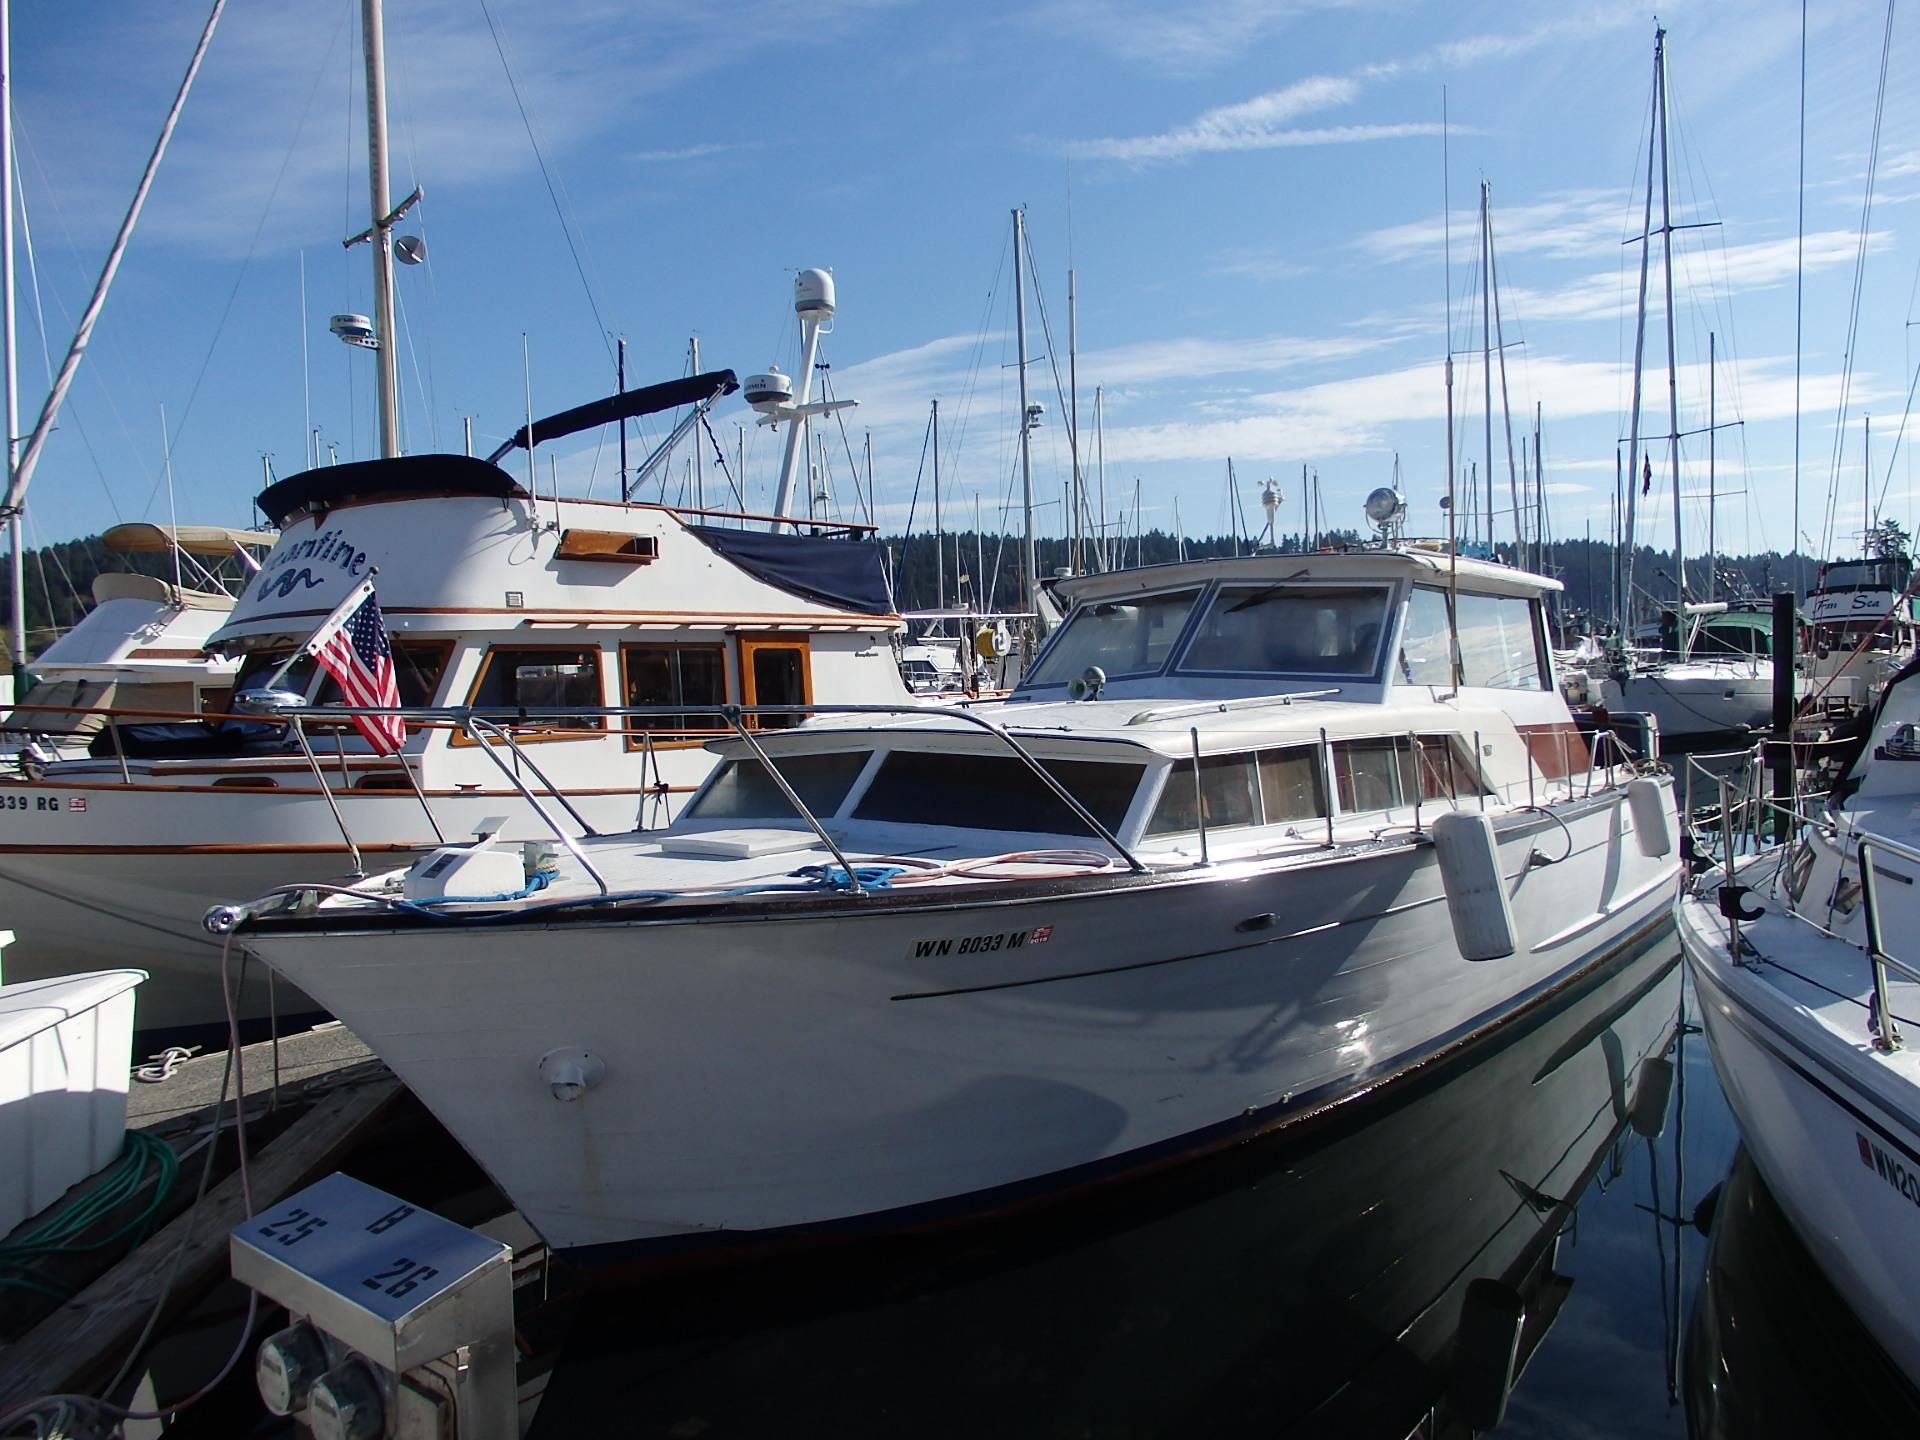 1964 Chris Craft Constellation Power Boat For Sale Www